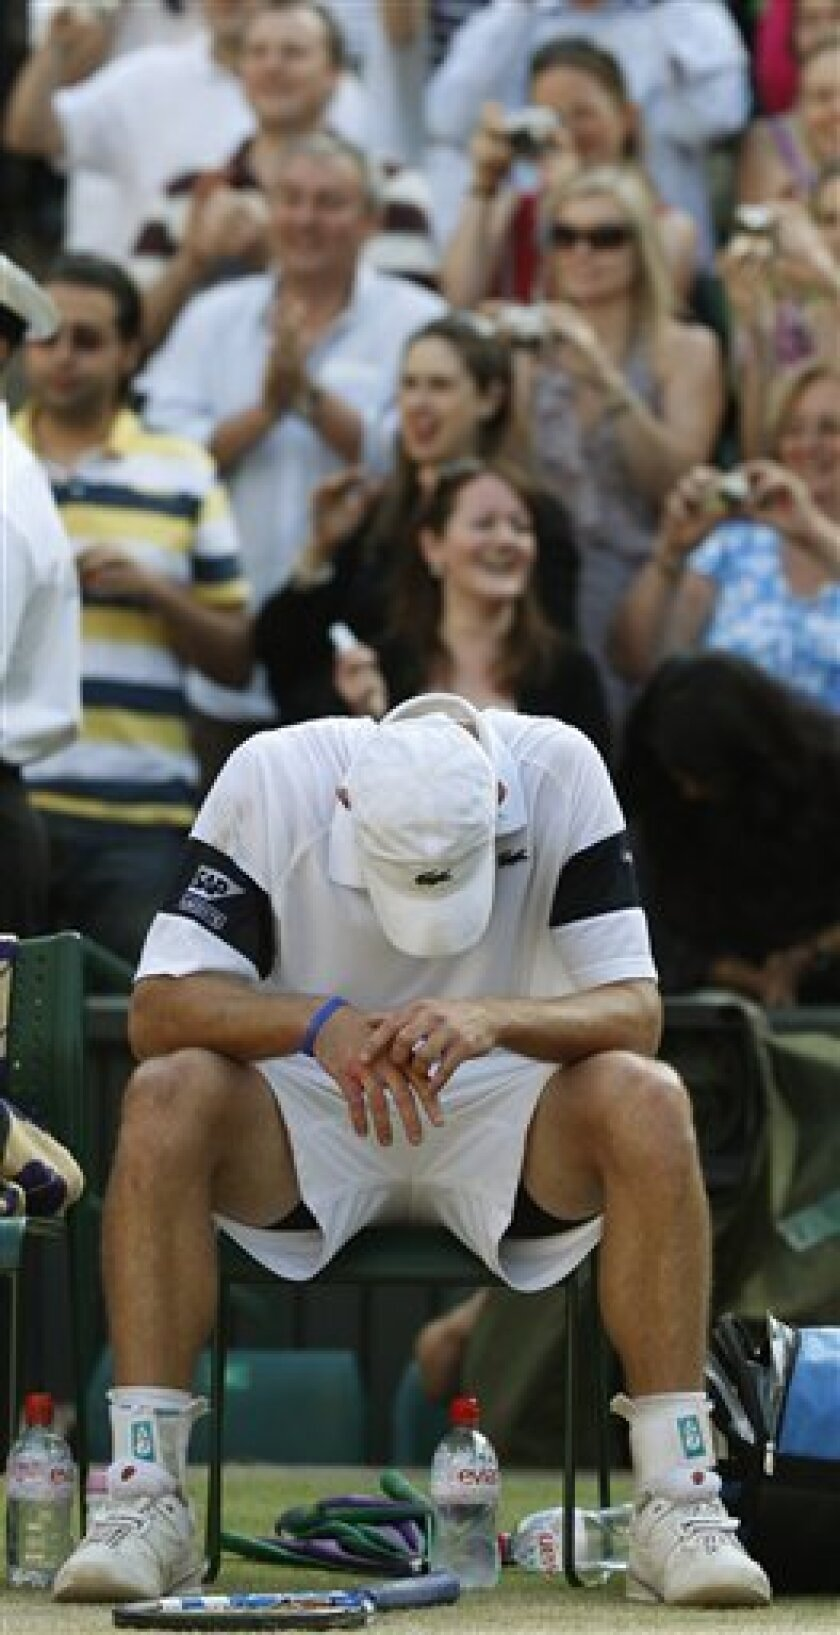 Andy Roddick slumps in his chair, after being defeated by Roger Federer, who won the men's singles championship on the Centre Court at Wimbledon, Sunday, July 5, 2009. (AP Photo/Alastair Grant)